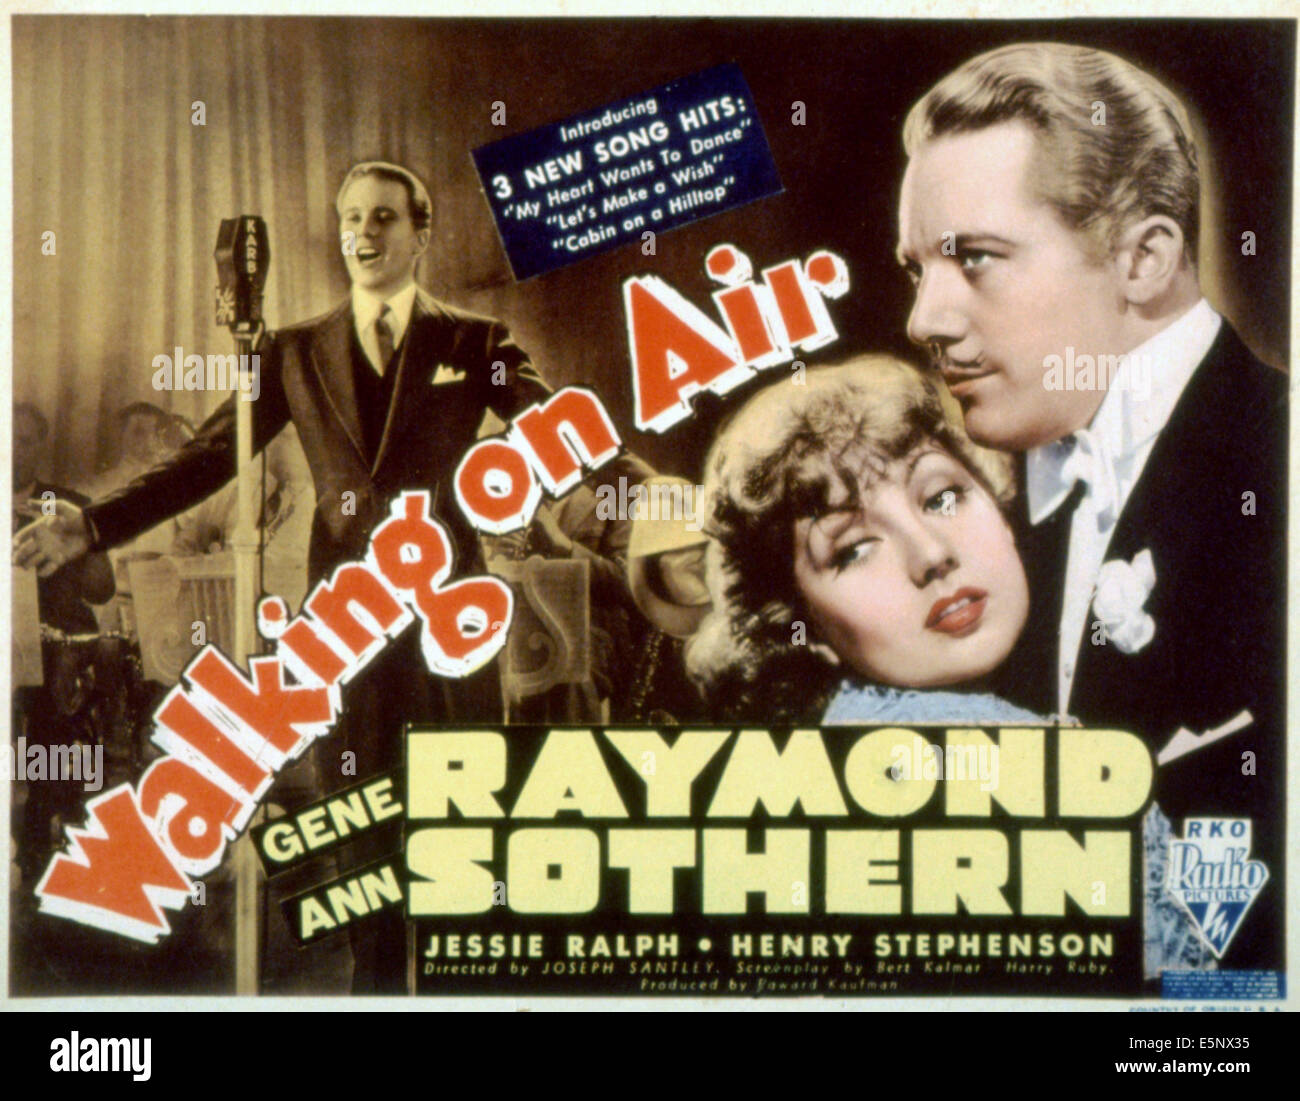 walking-on-air-ann-sothern-gene-raymond-